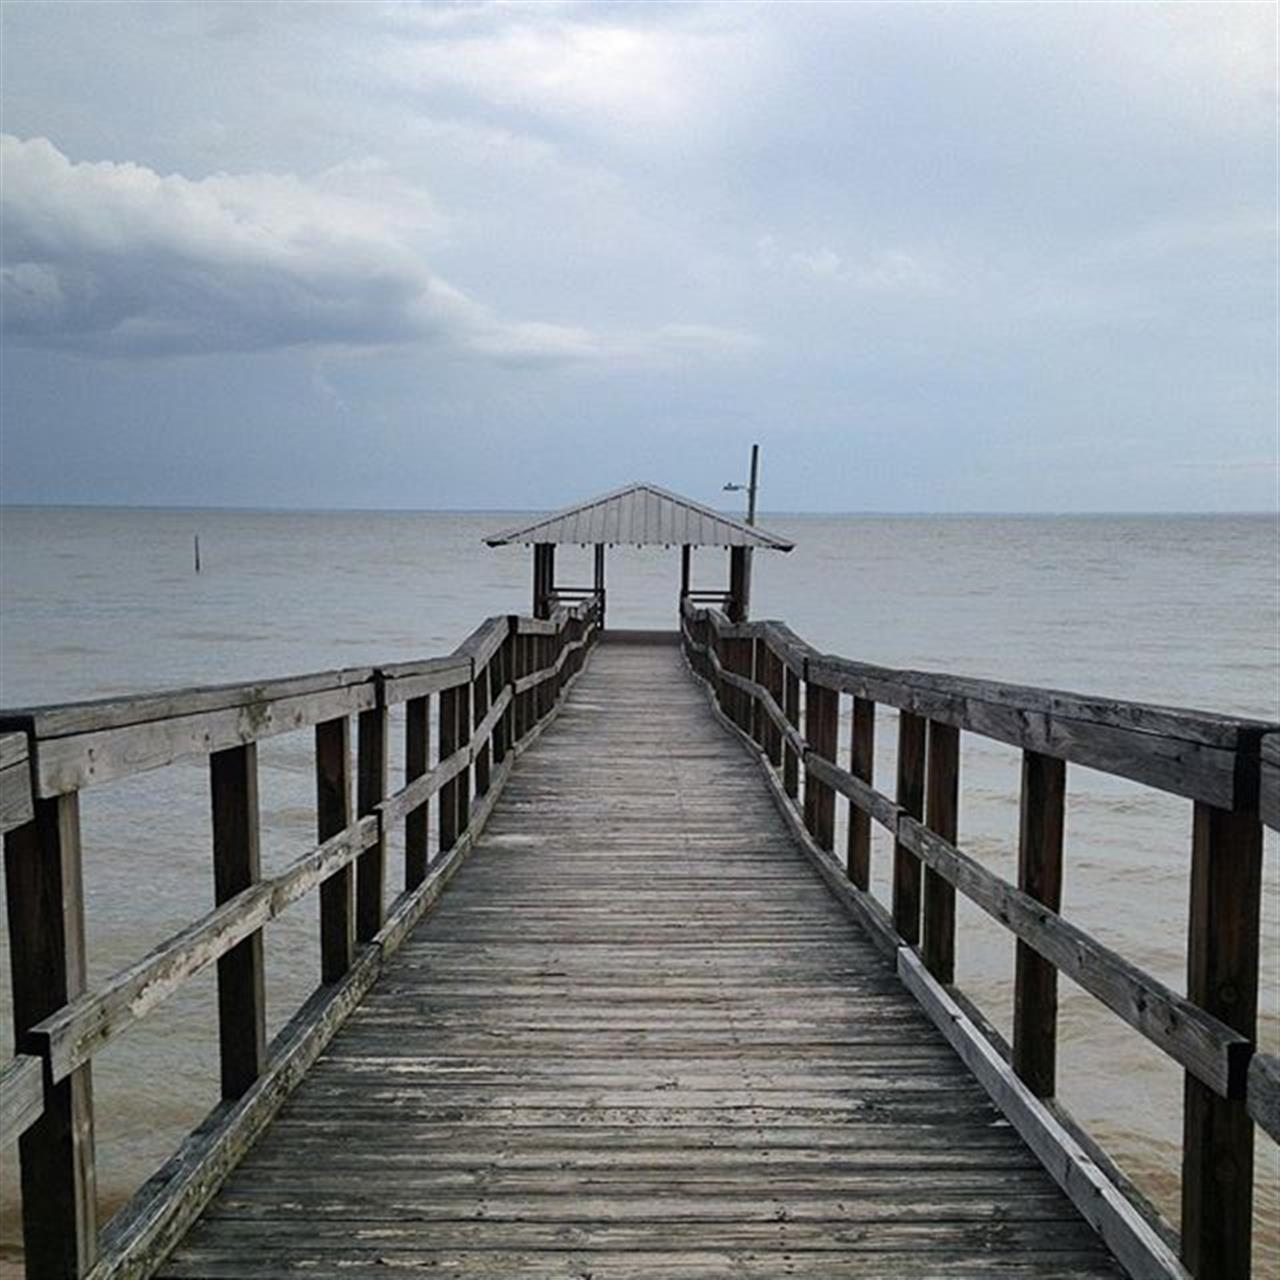 Good morning from Fairhope, Alabama. Rainy days never take away from the beauty of living on the Gulf Coast. #LetsJoinForces . . . . . BellatorAL.com || #realtors #property #fairhopeal #gulfcoastliving #dock #bay #baldwincounty #mobileal #fishing #waterfront #coast #mobilebay #rainyday #saturdays #realestate #realestateagents #bellatorrealestate #community #leadingrelocal